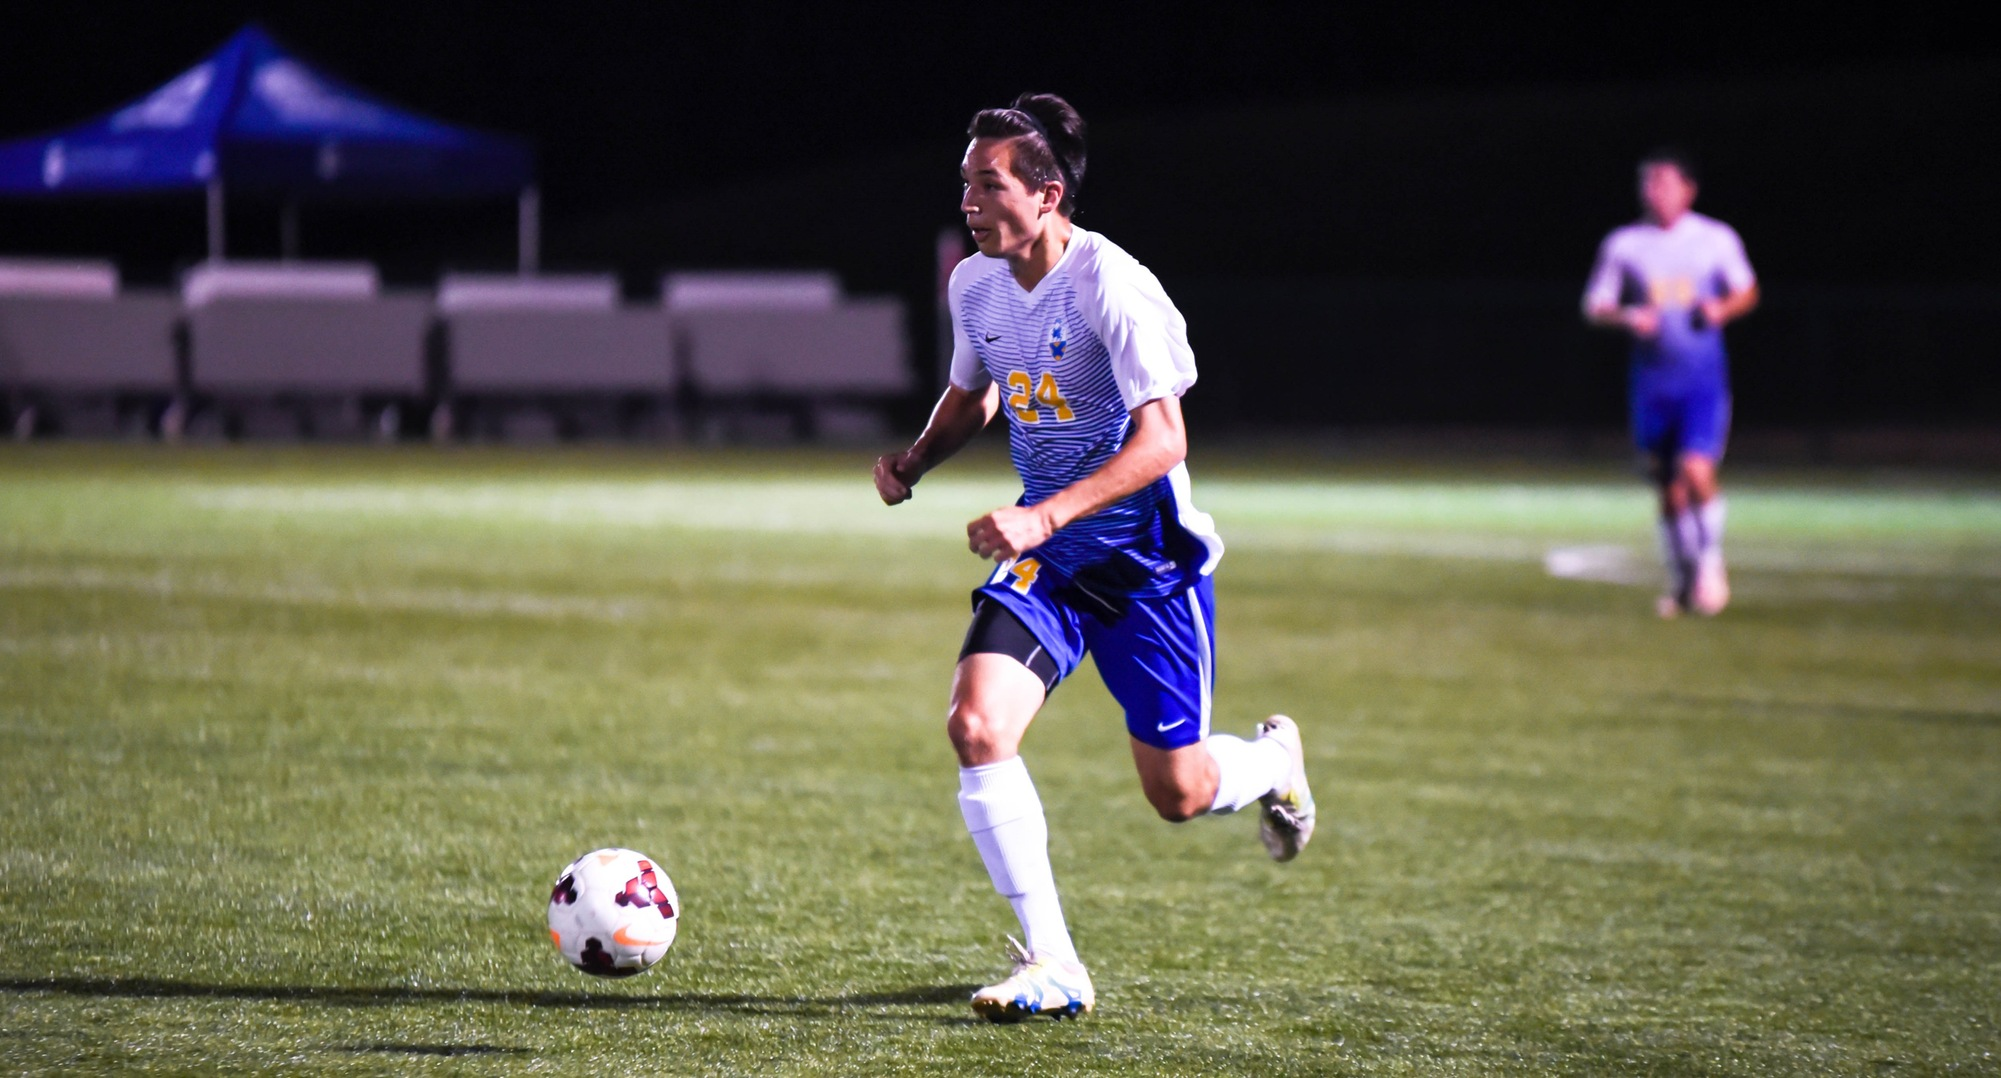 Baskaron, Lowes Lift Men's Soccer to Victory at John Wesley